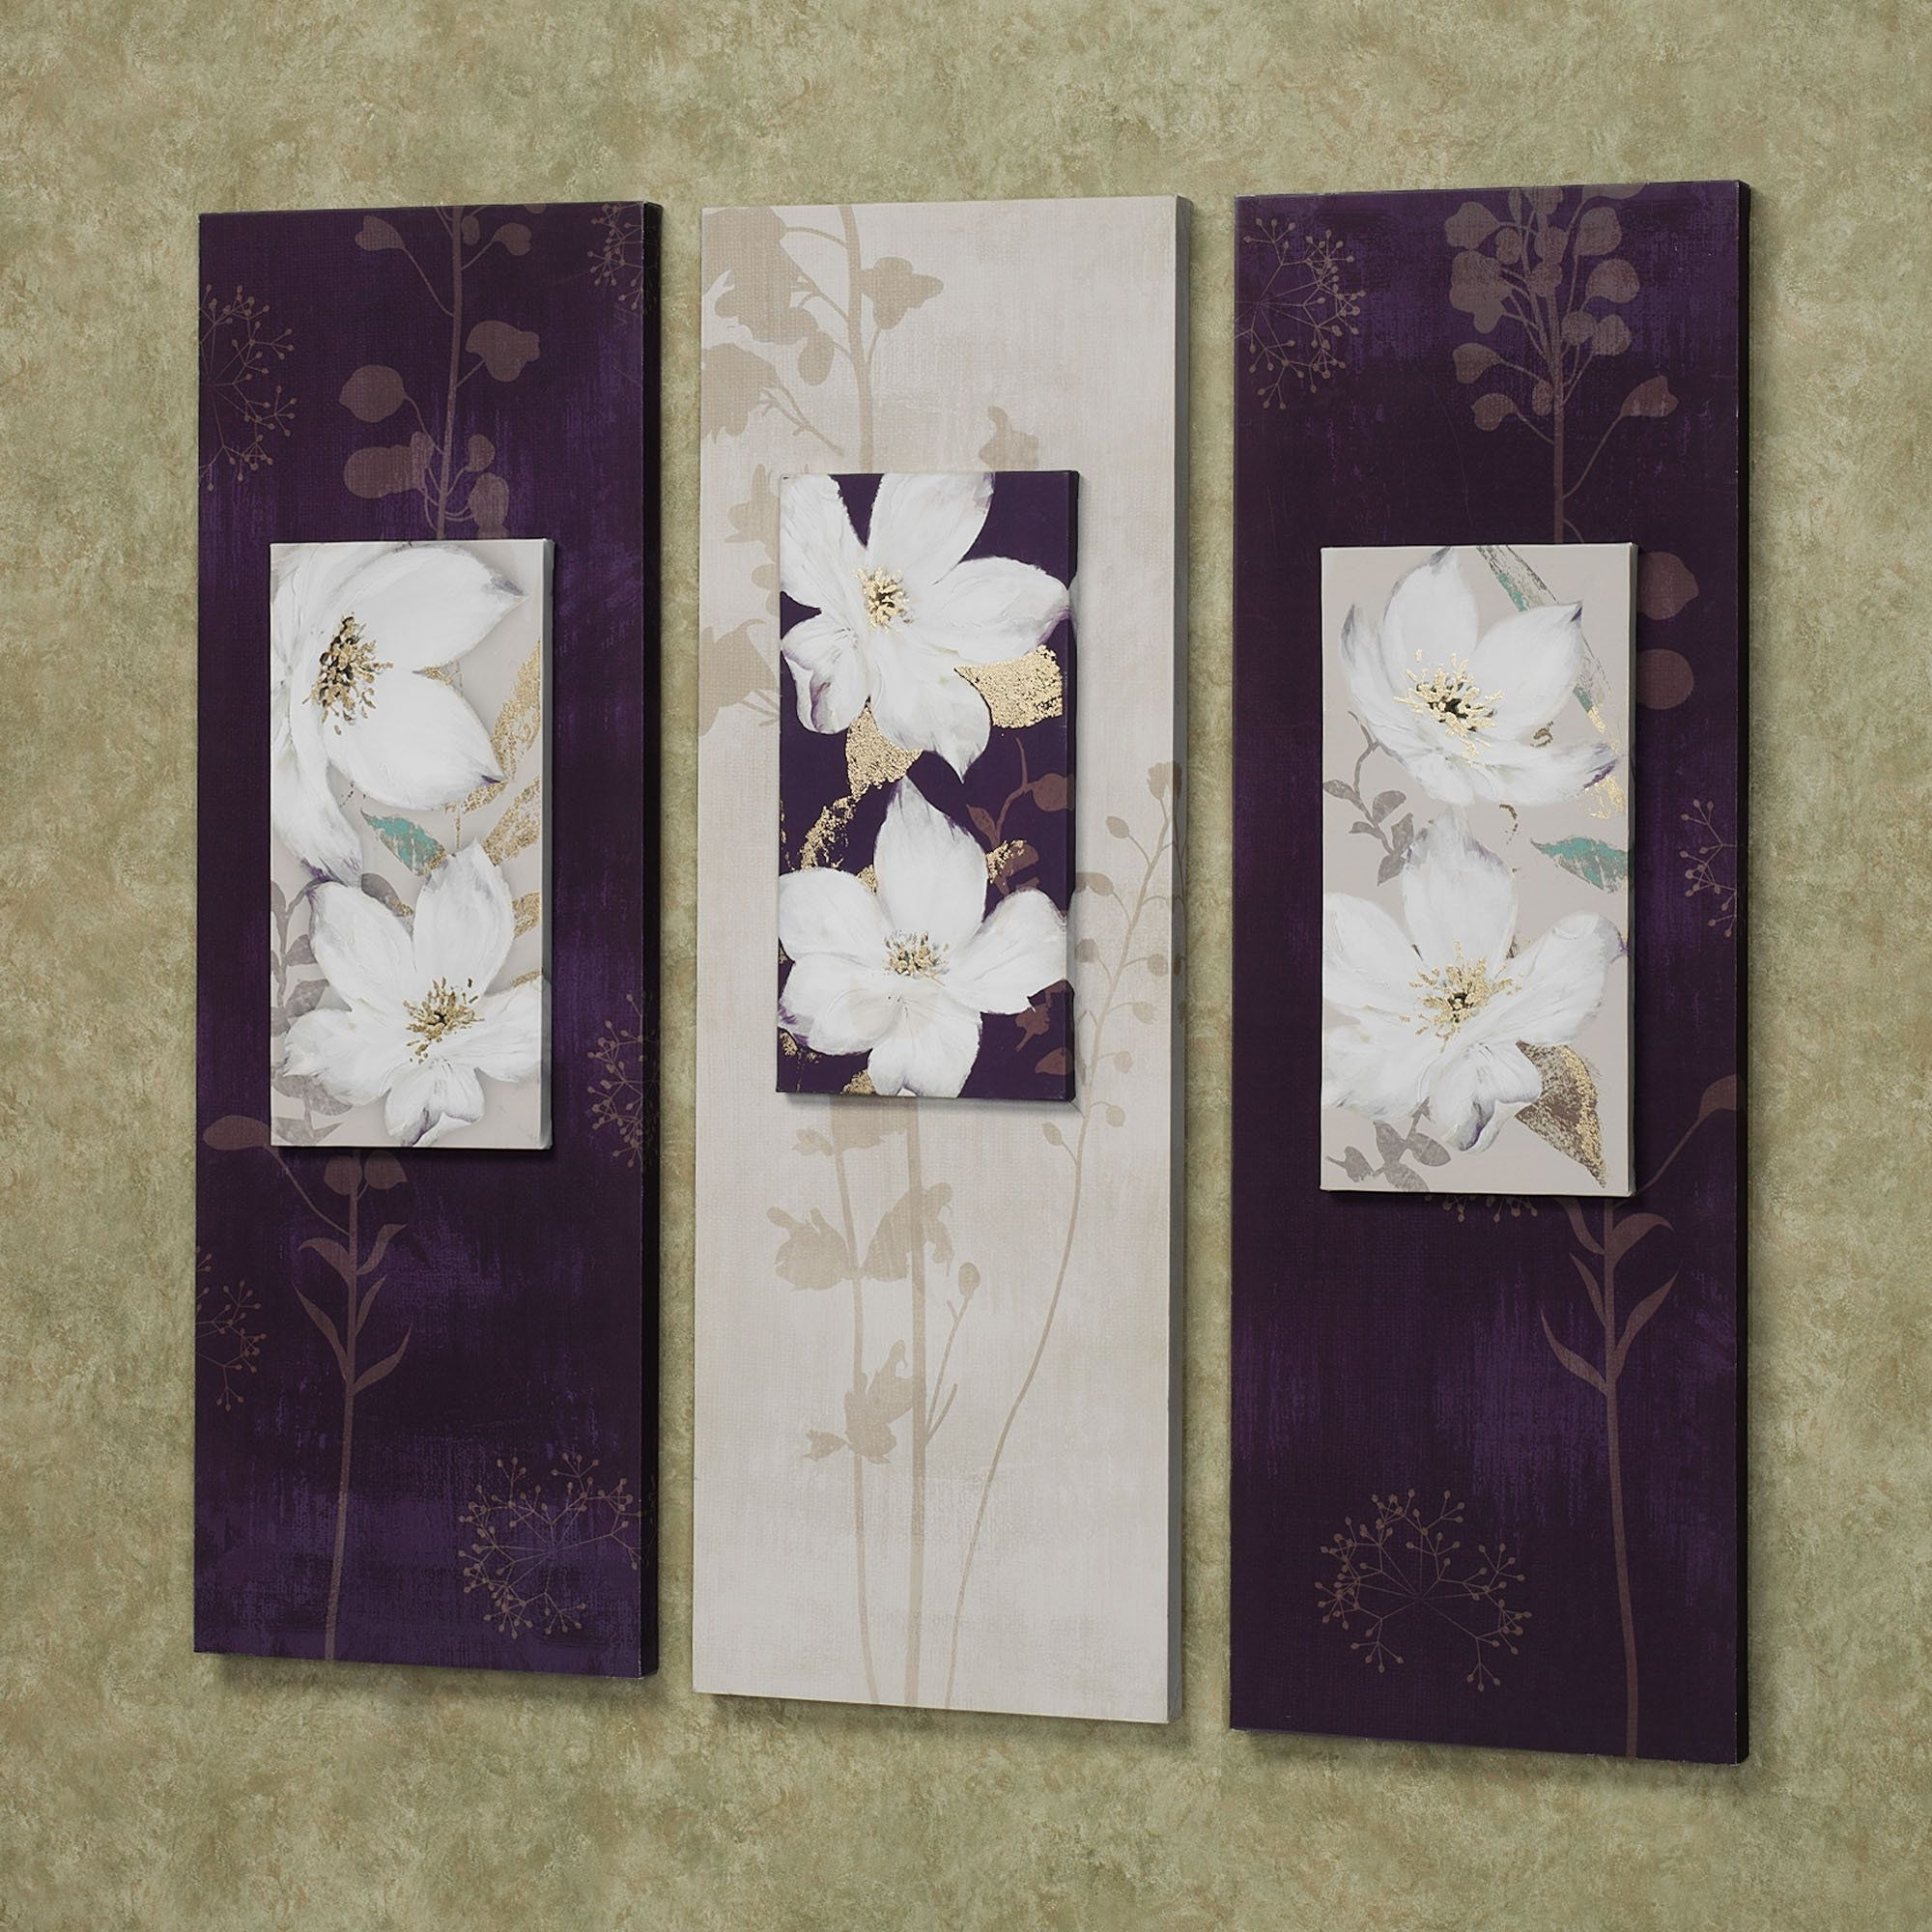 Garden Dance Floral Canvas Wall Art Set | Wall Art Sets, Canvases Within Most Up To Date Lilac Canvas Wall Art (View 12 of 15)